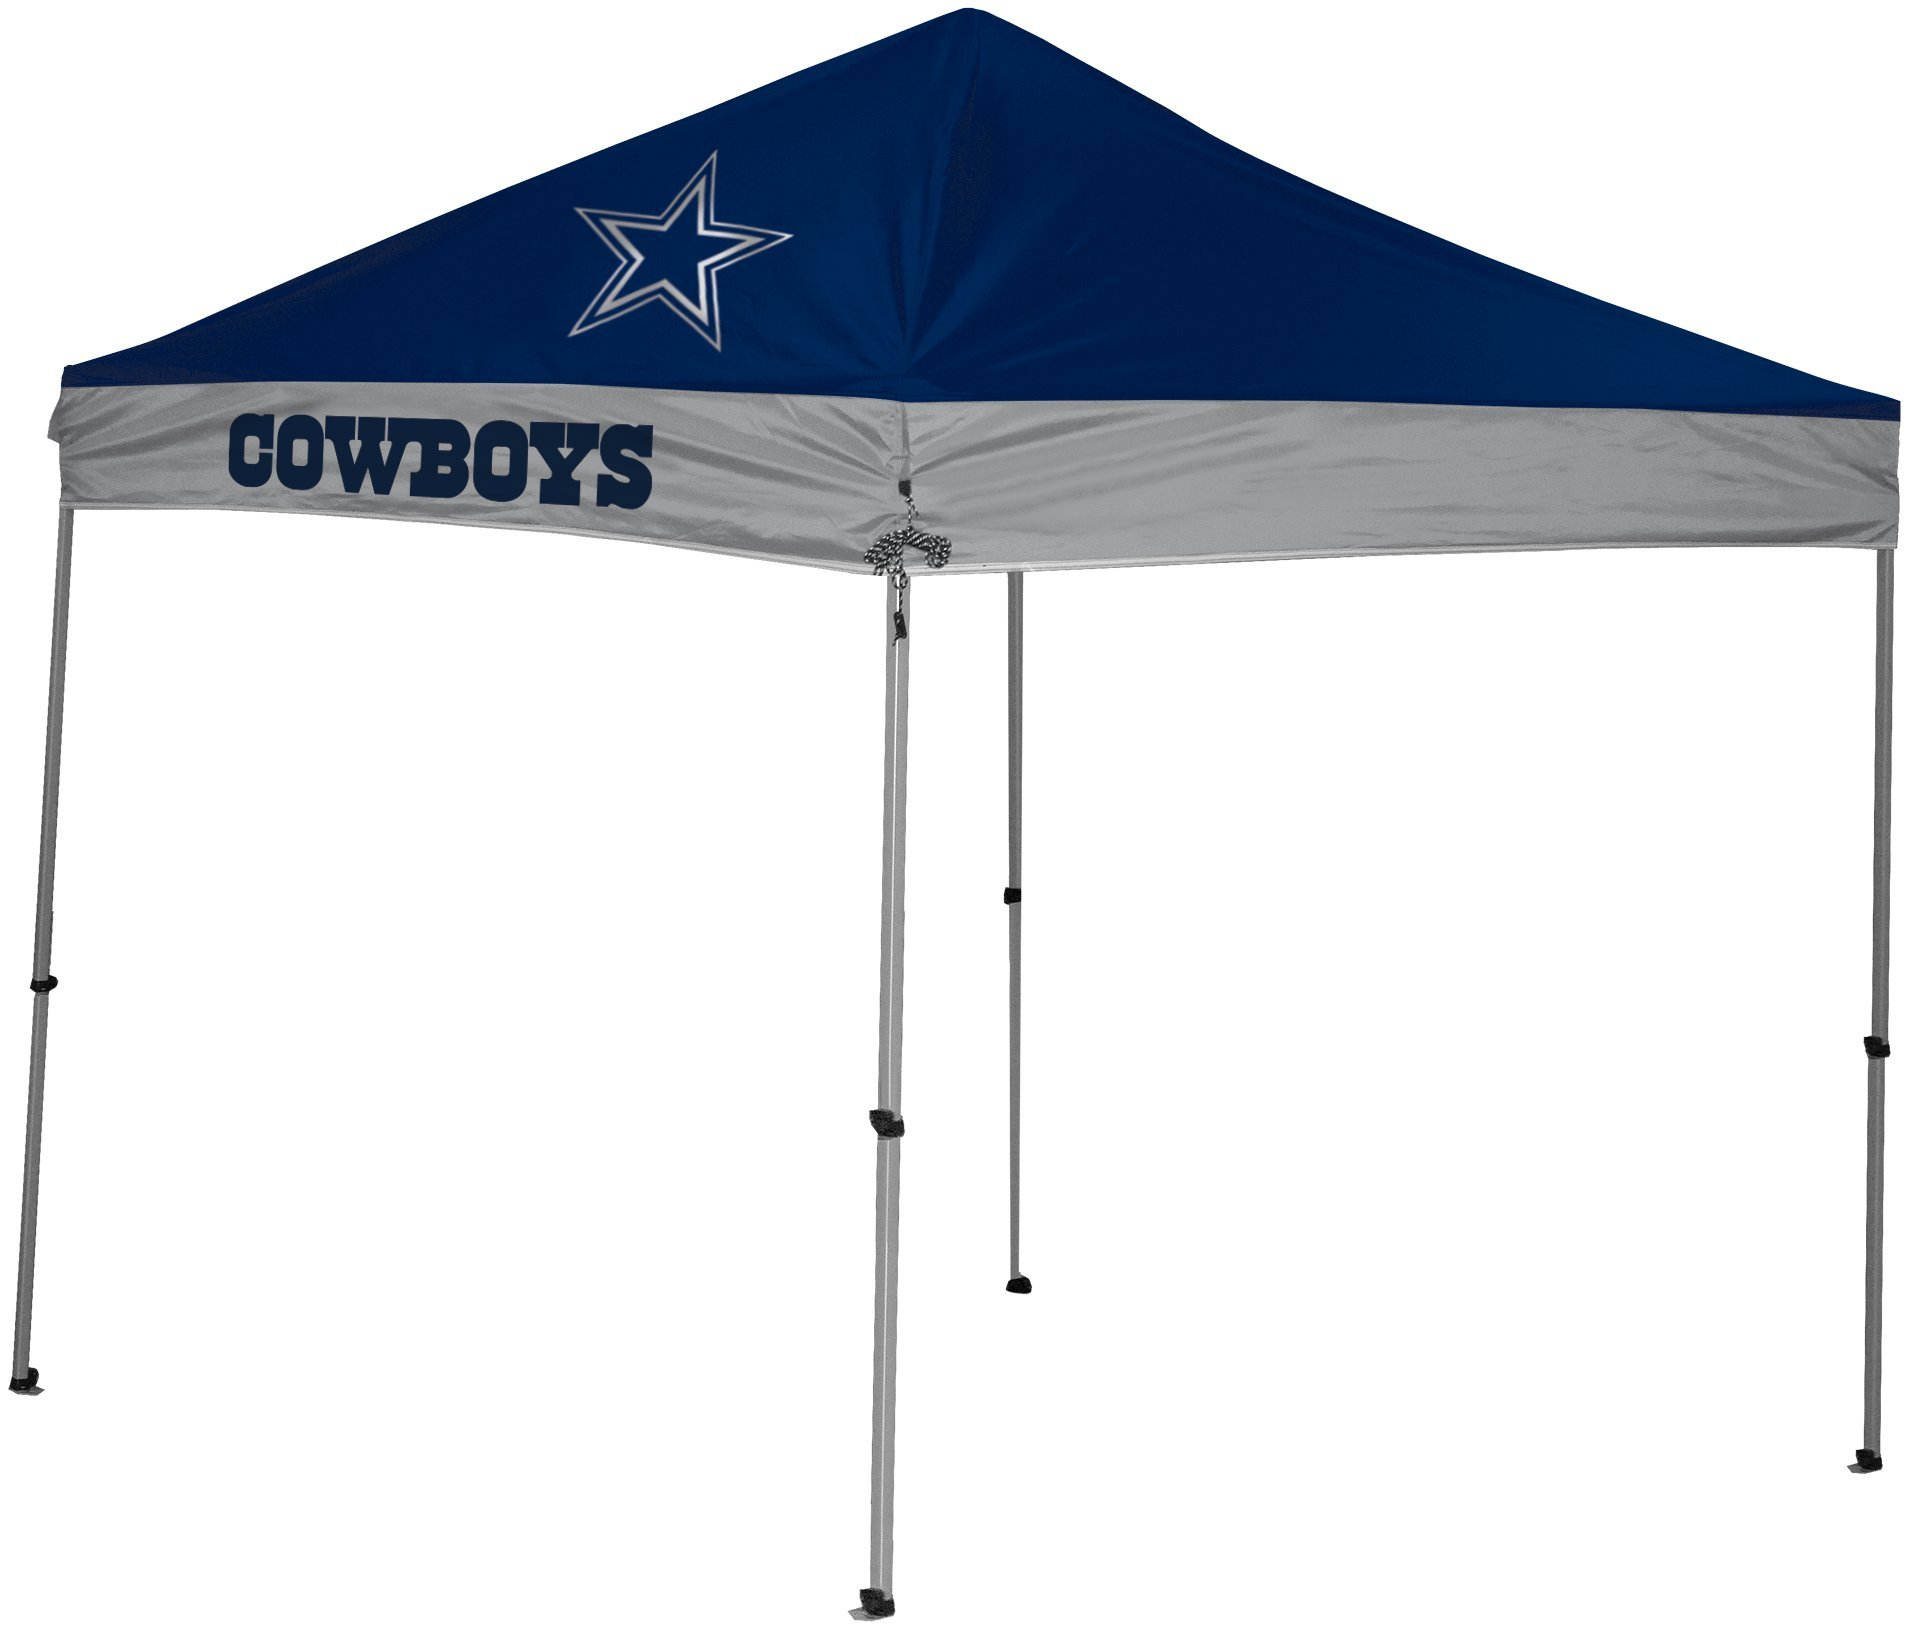 Rawlings NFL Instant Pop-Up Canopy Tent with Carrying Case, 9x9